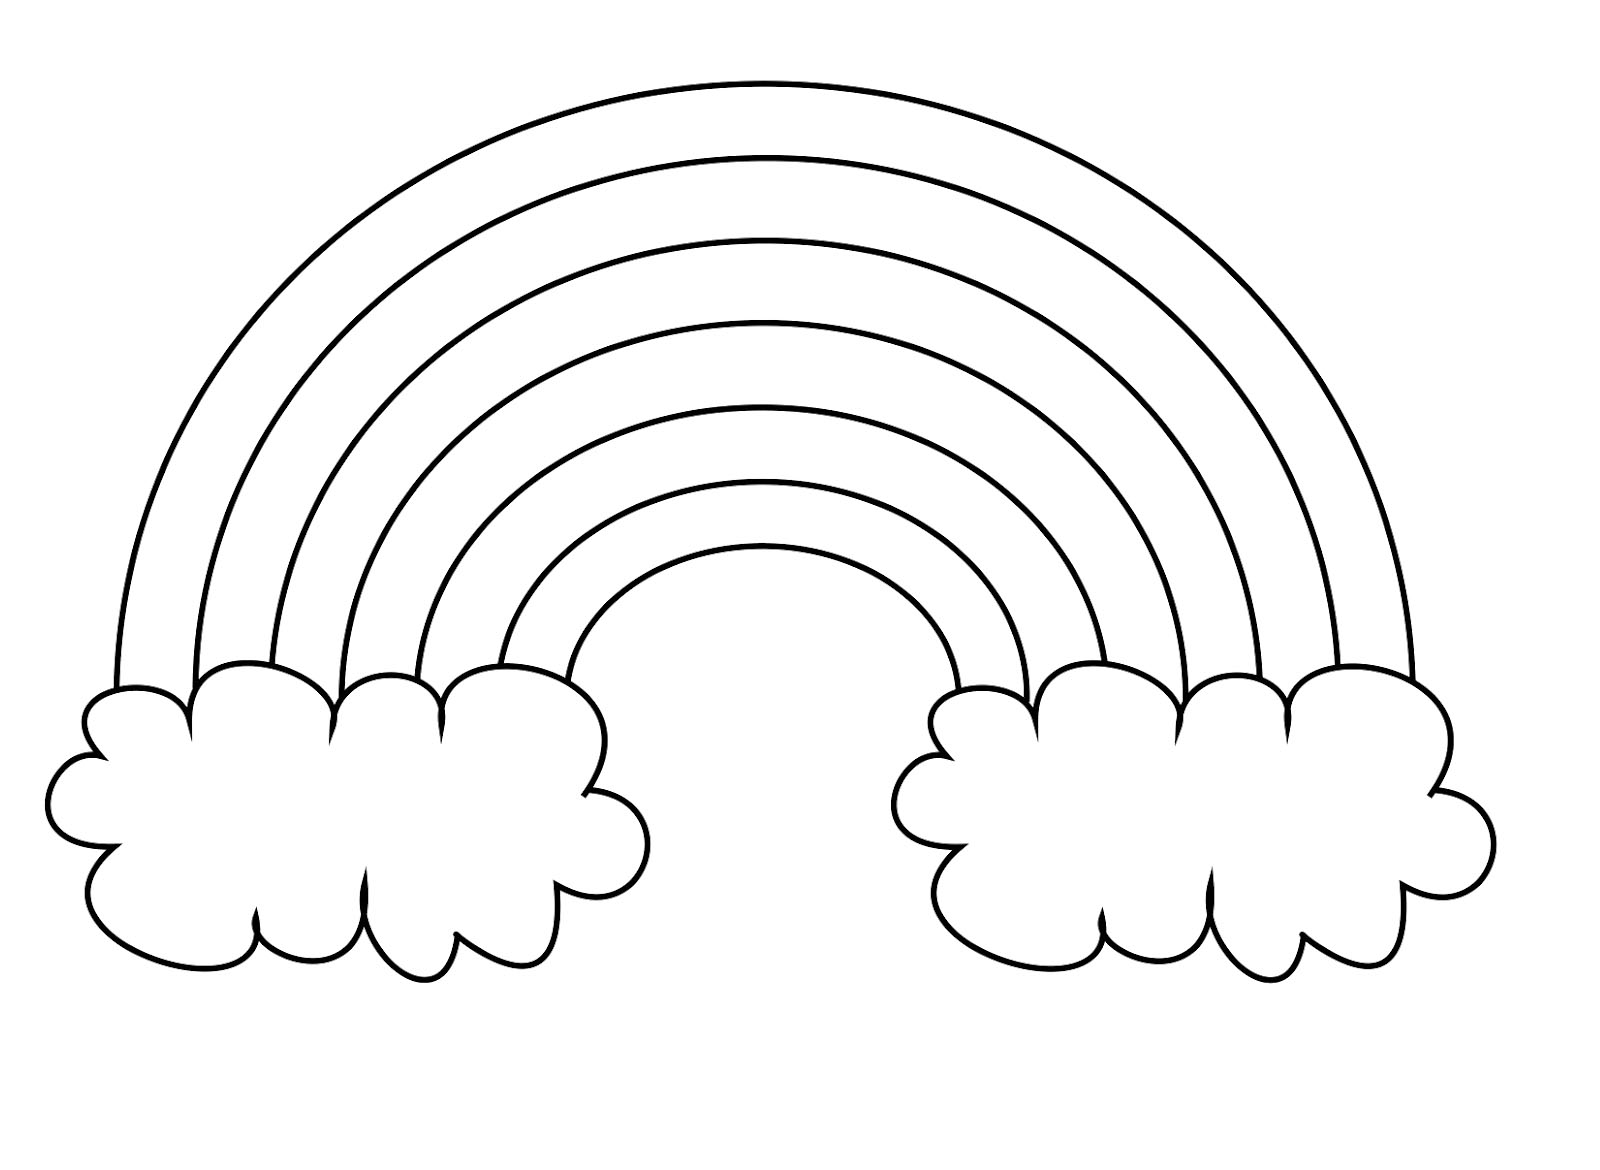 coloring pictures of rainbows free printable rainbow coloring pages for kids coloring of pictures rainbows